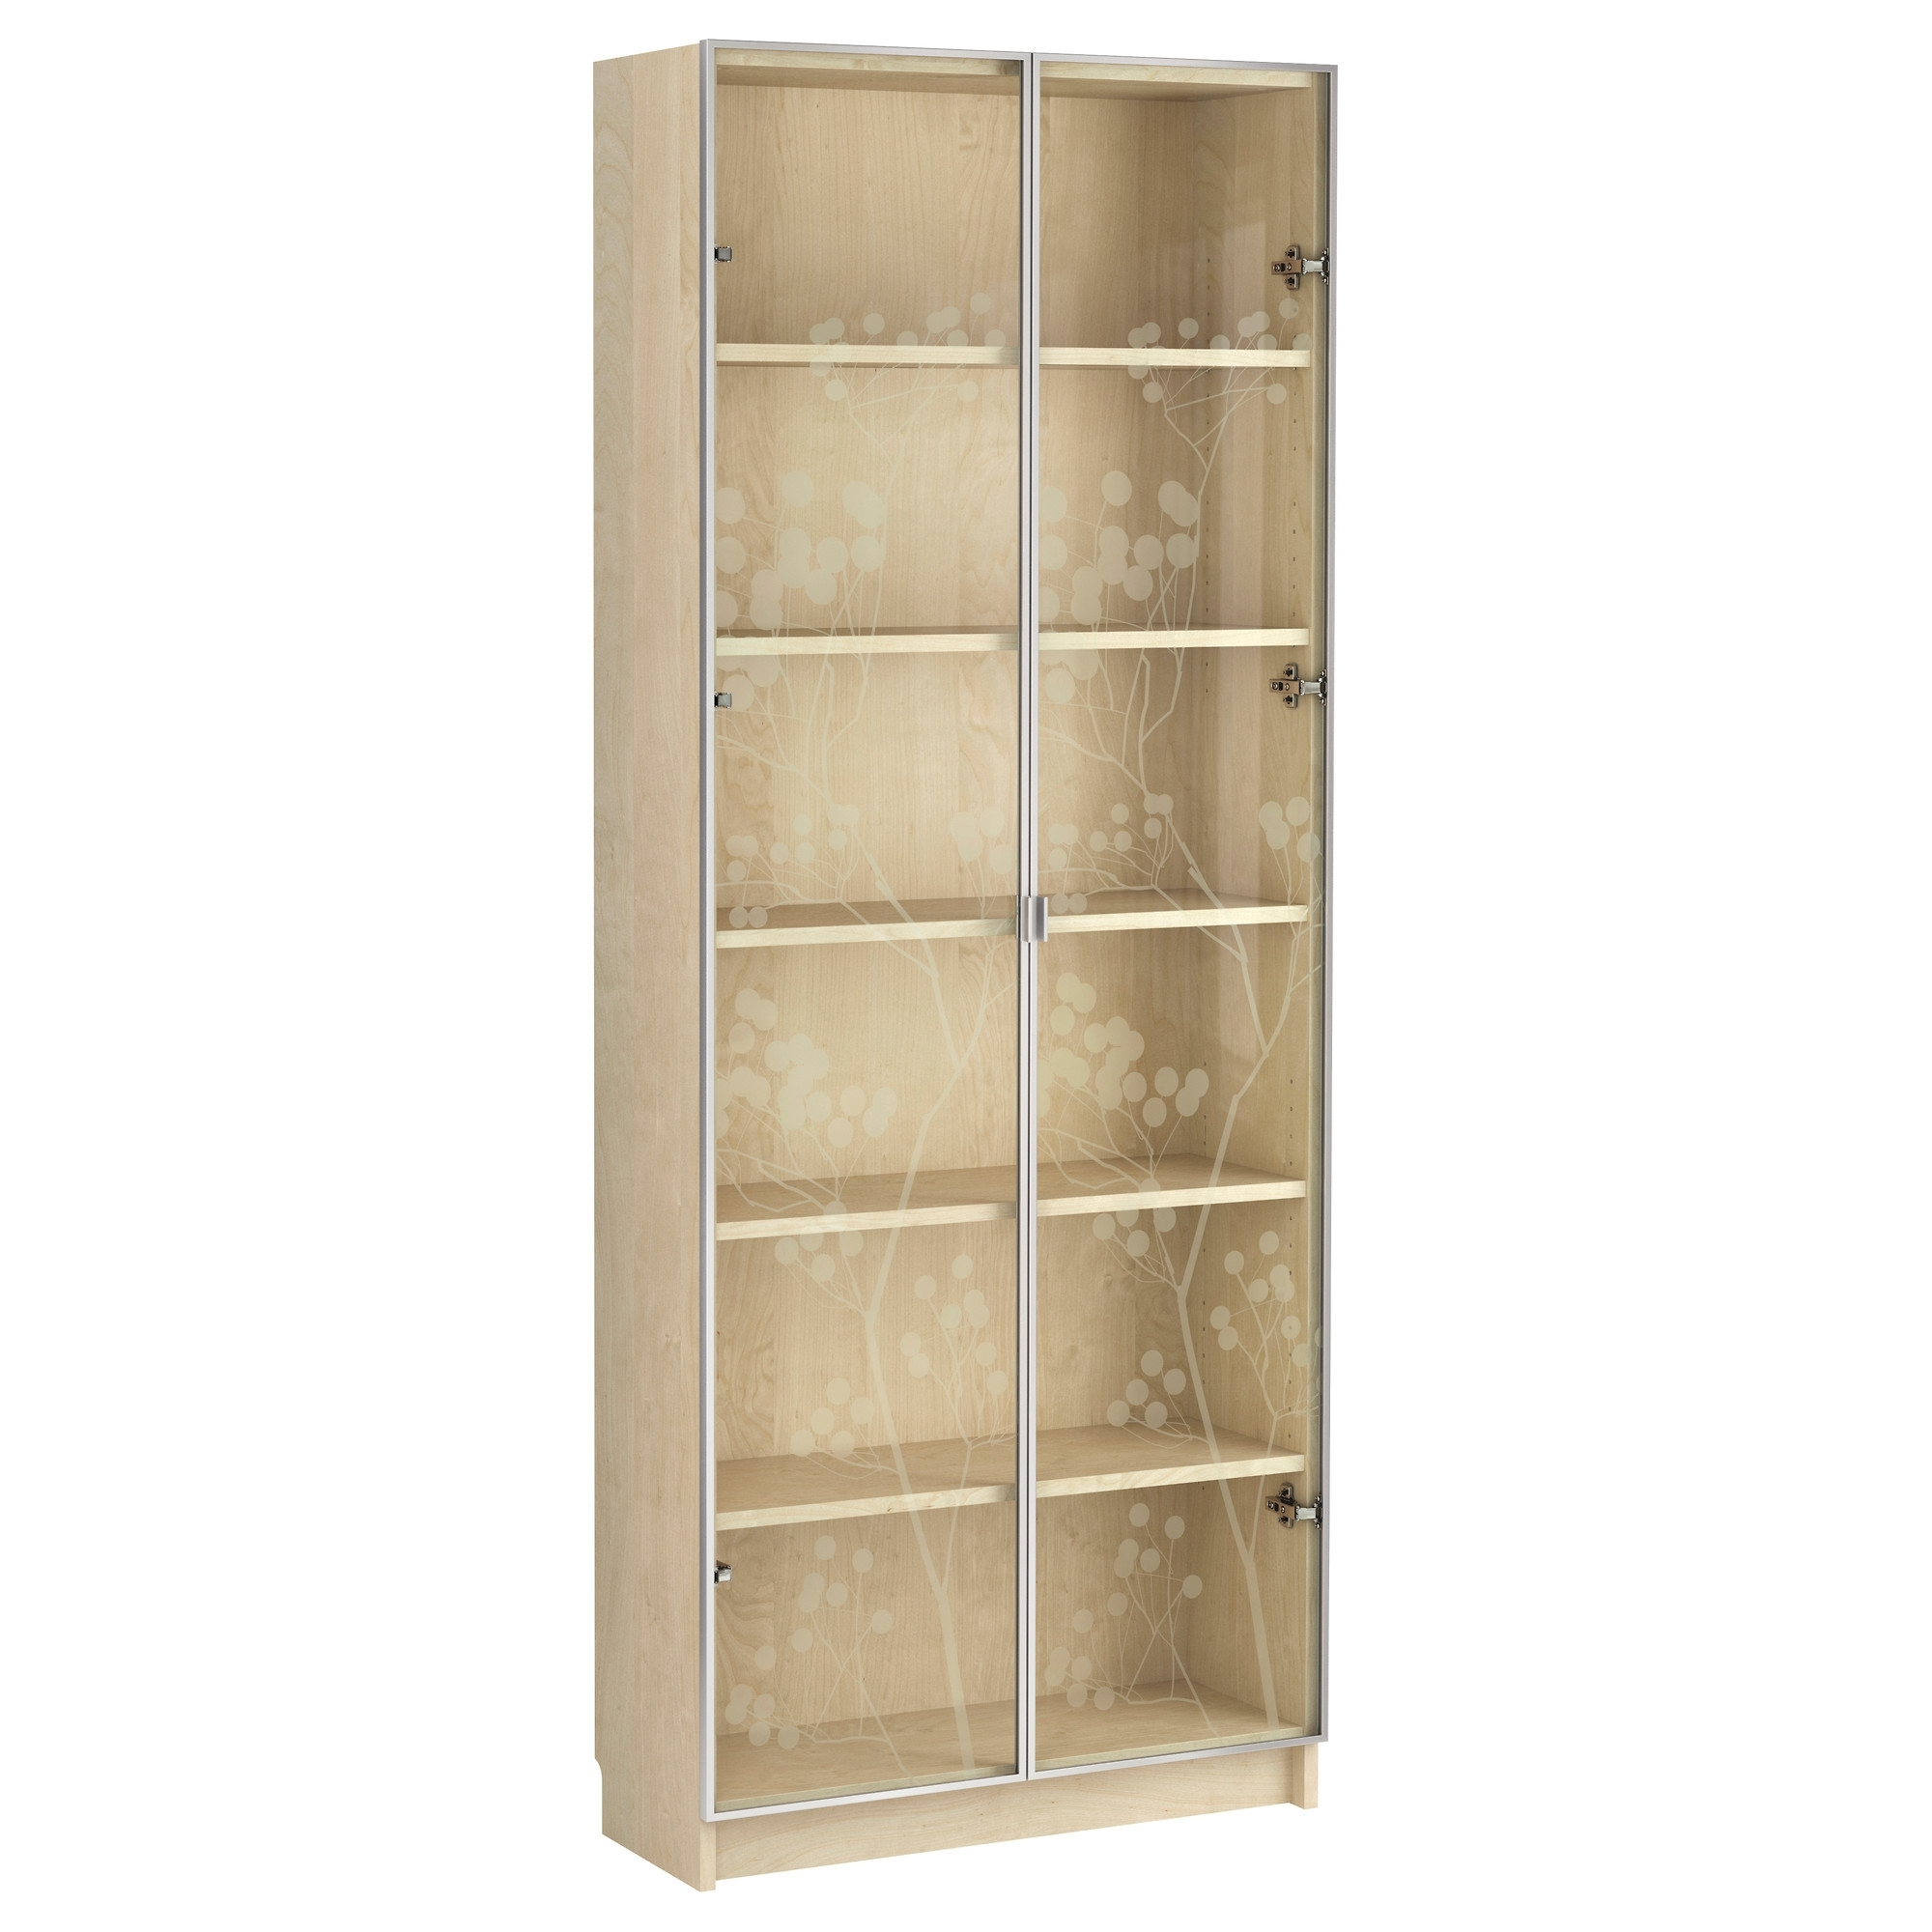 Bookcases With Glass Doors With Widely Used Thinking I'm Leaning Towards This Birch Veneer Vs The White (View 7 of 15)